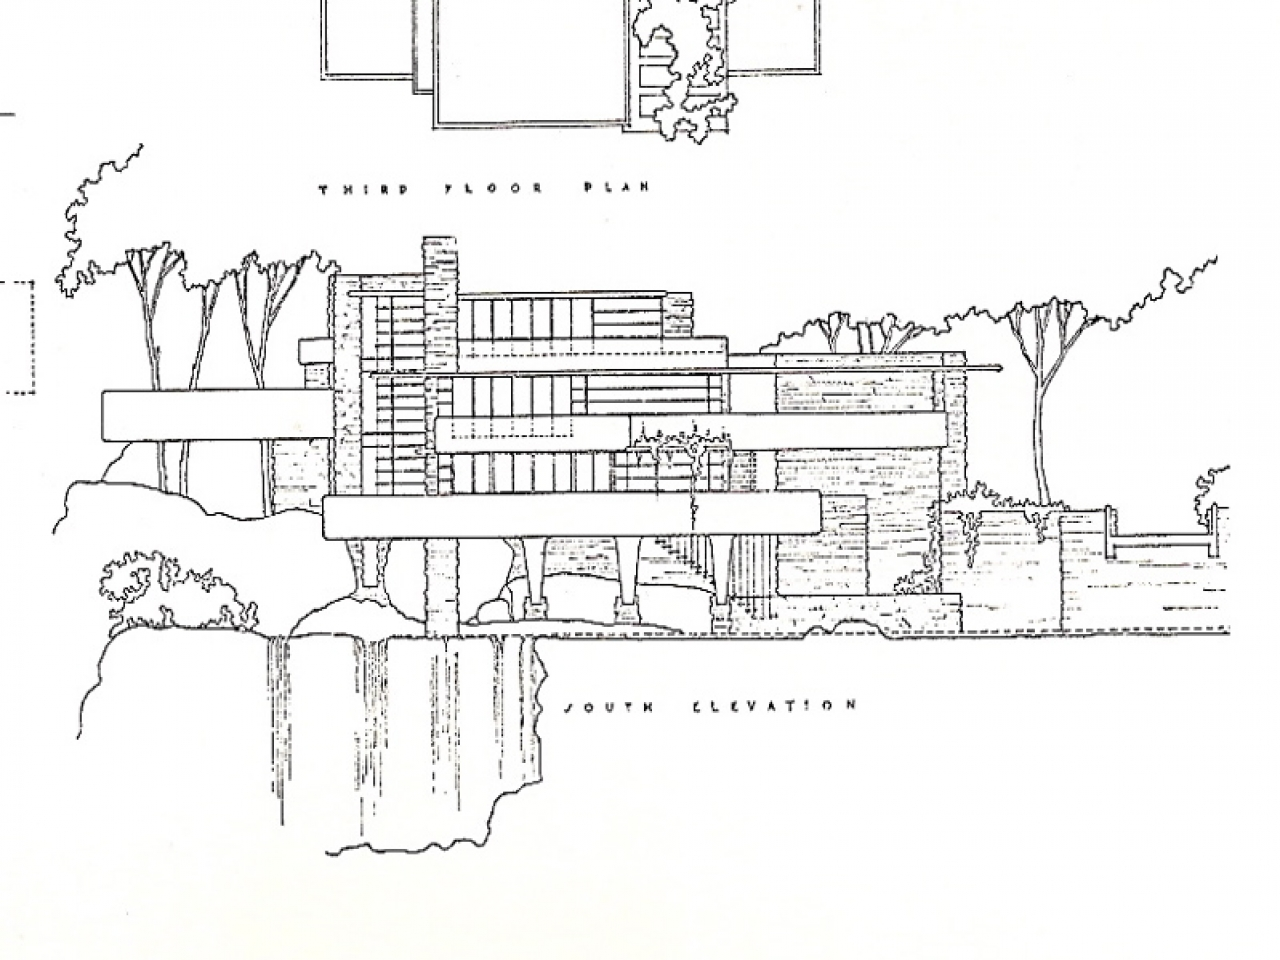 Elevation Plan Blueprint : Falling water plans and elevations